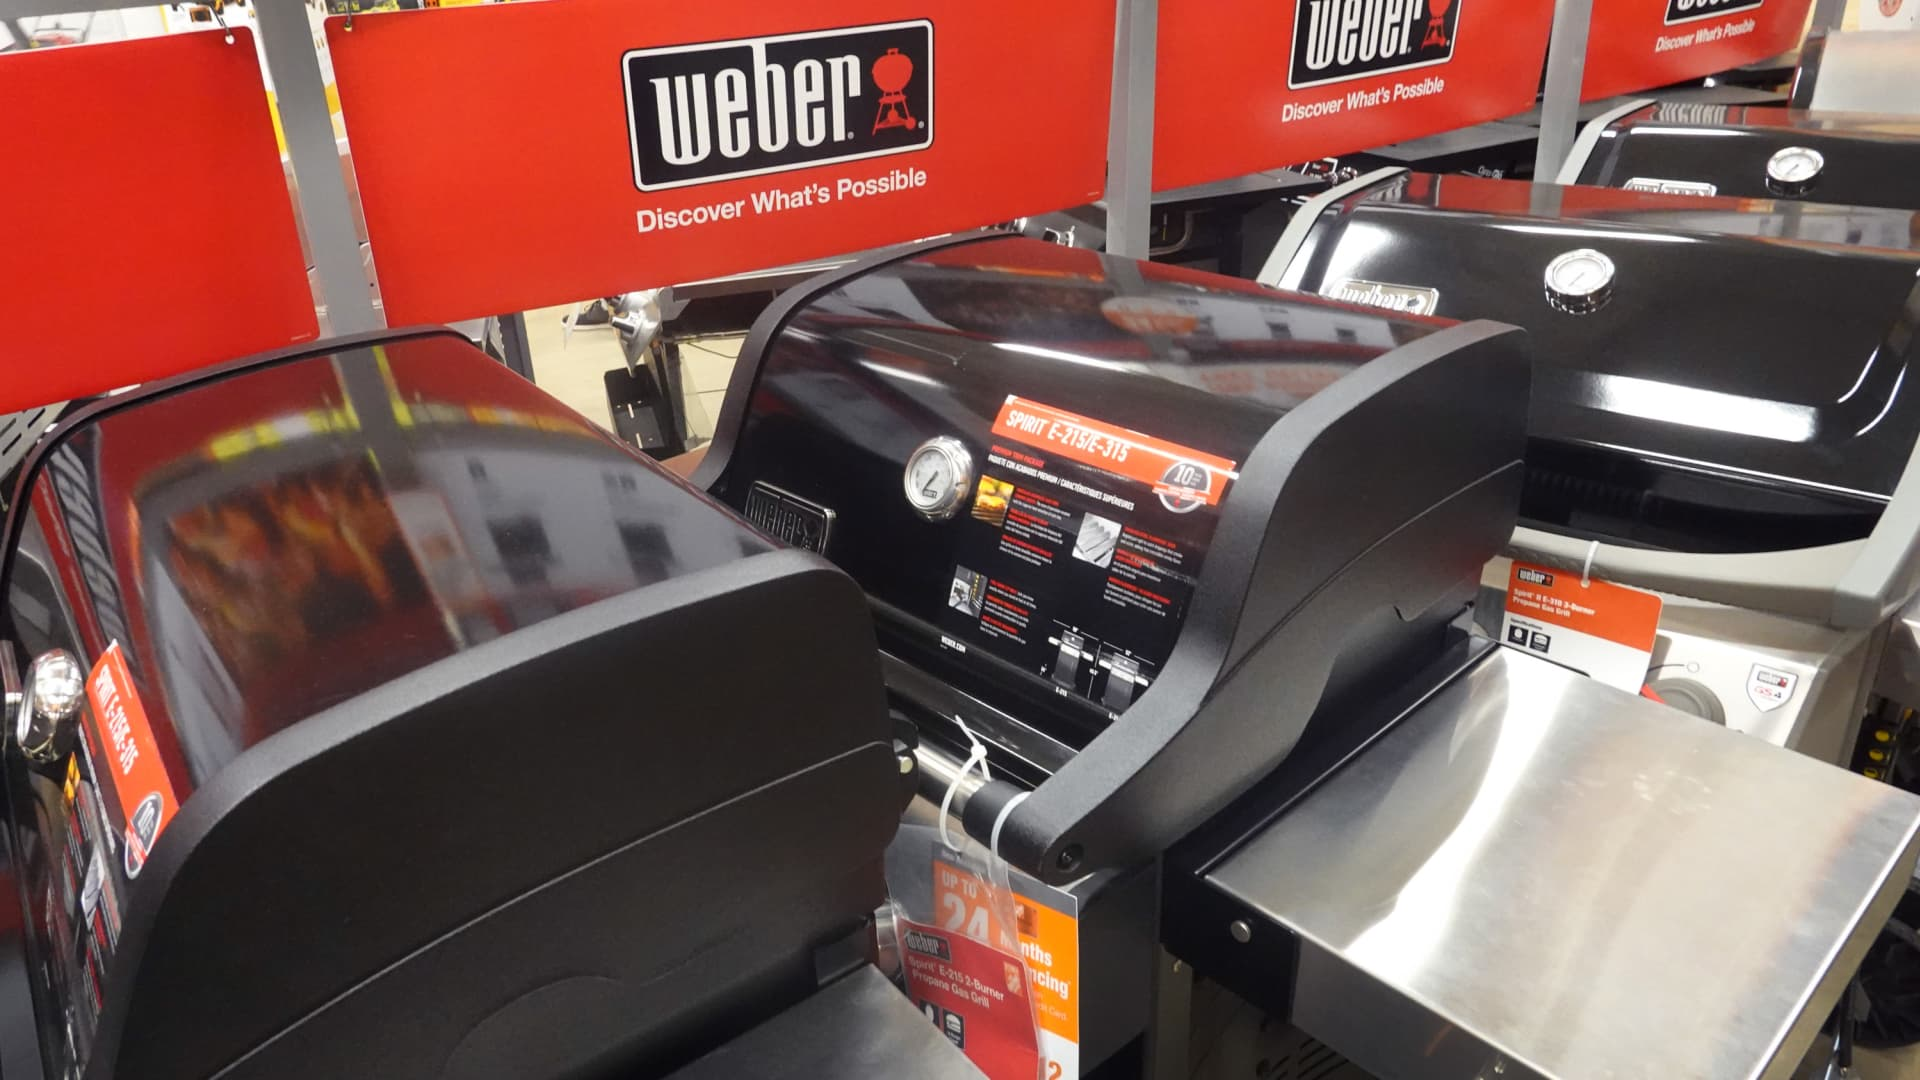 Weber, which plans to trade on the New York Stock Exchange under the ticker 'WEBR' could be valued between $4 billion and $6 billion.